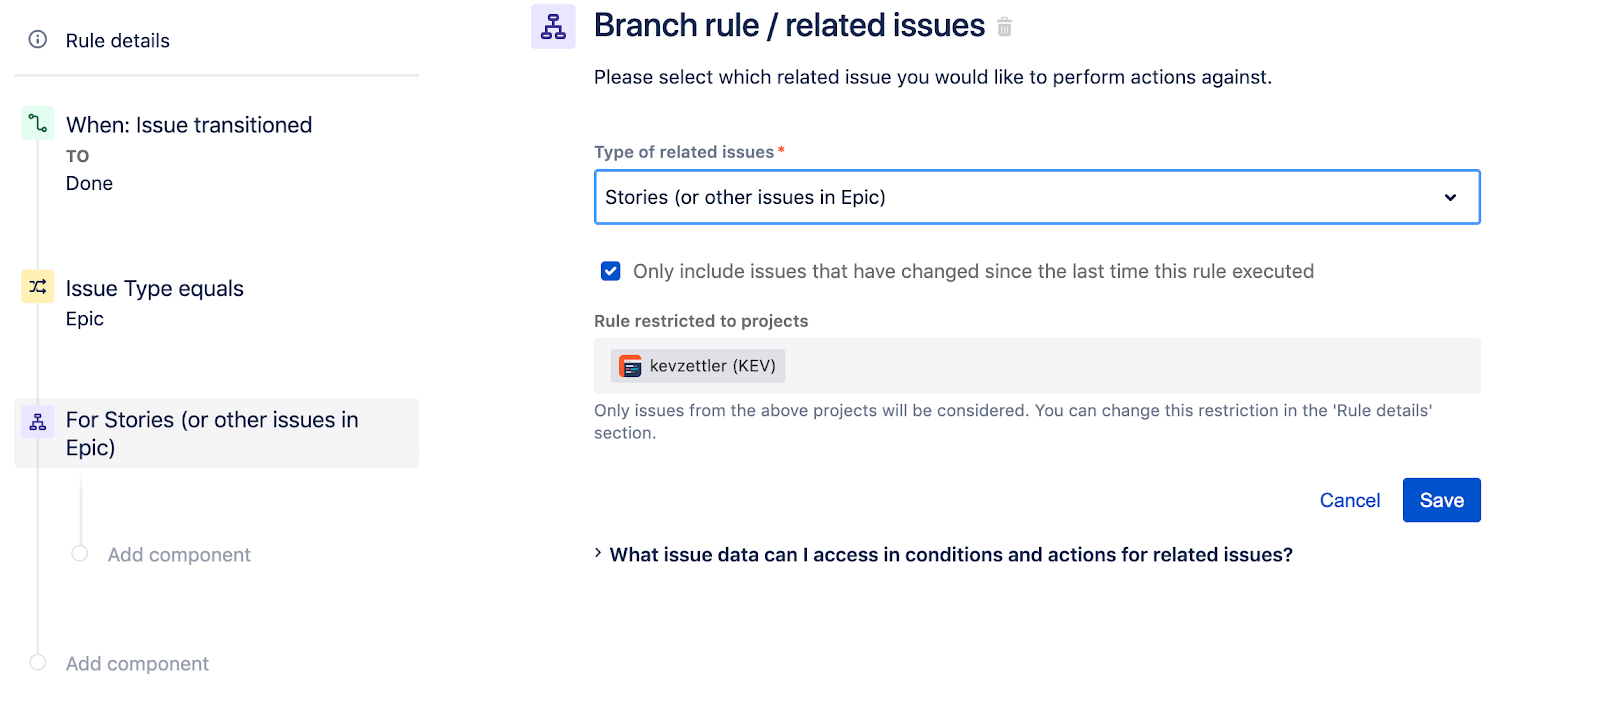 Branch rule and related issues screen